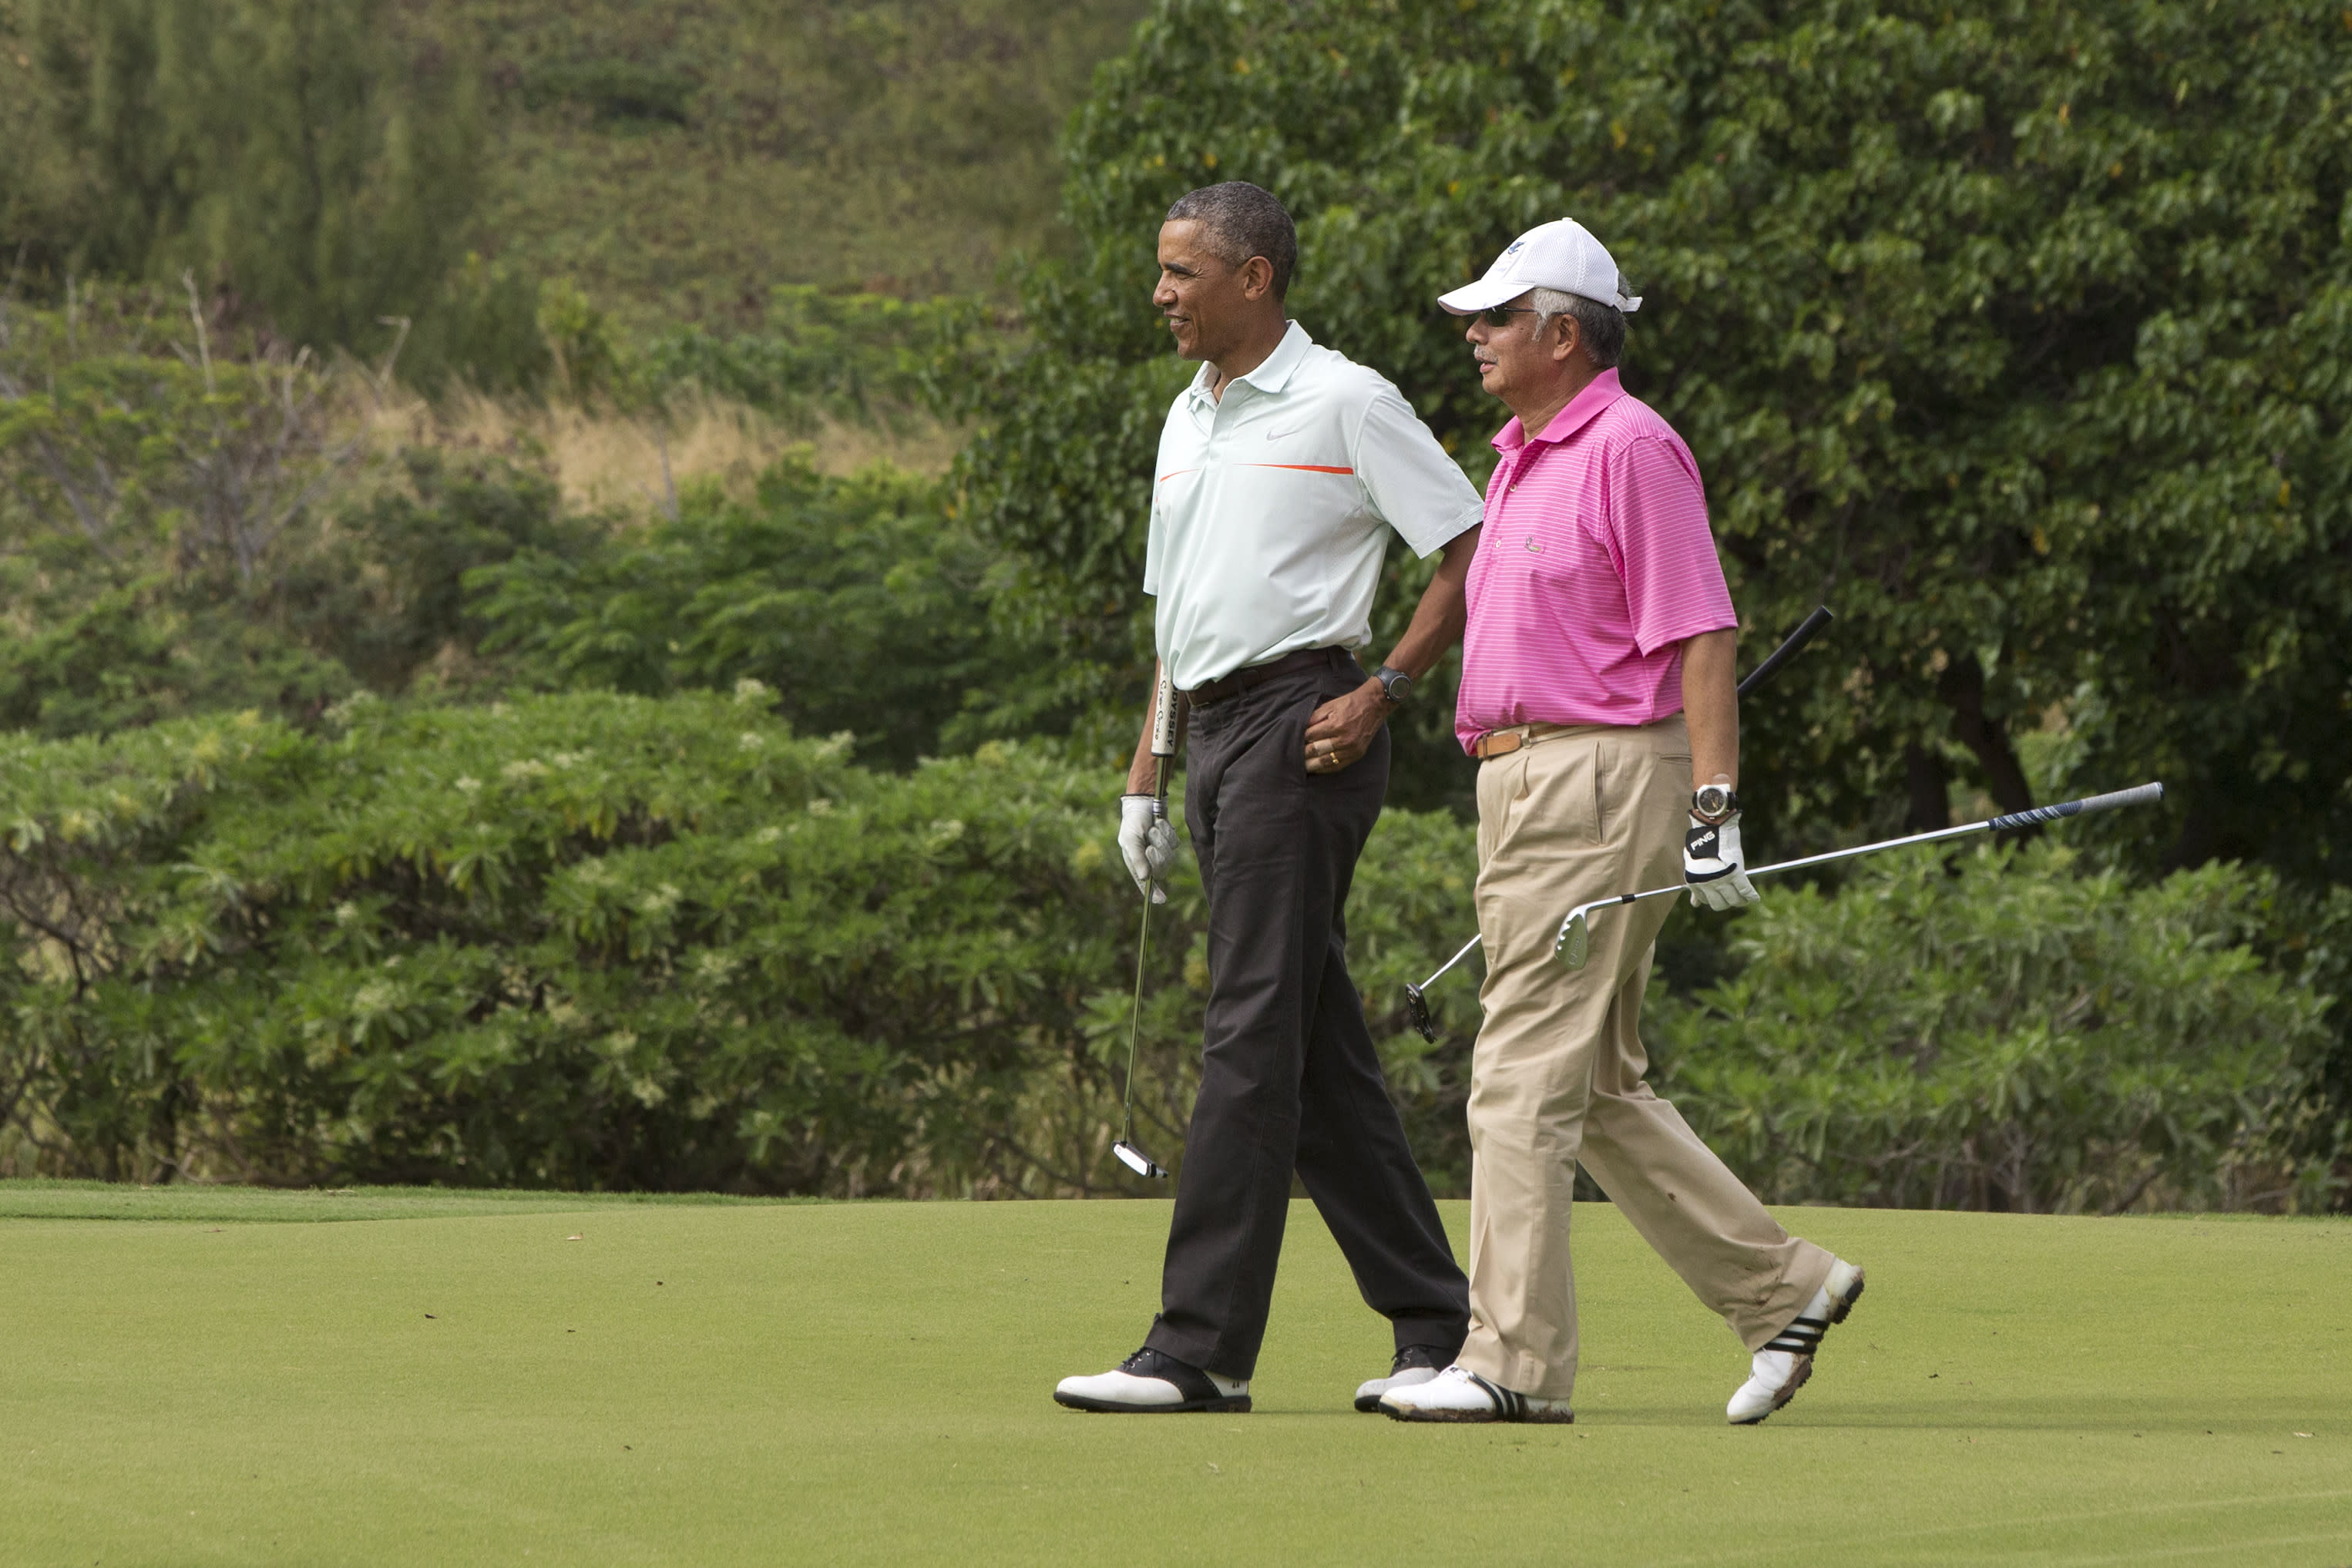 President Obama's Hawaii vacation: Day 5